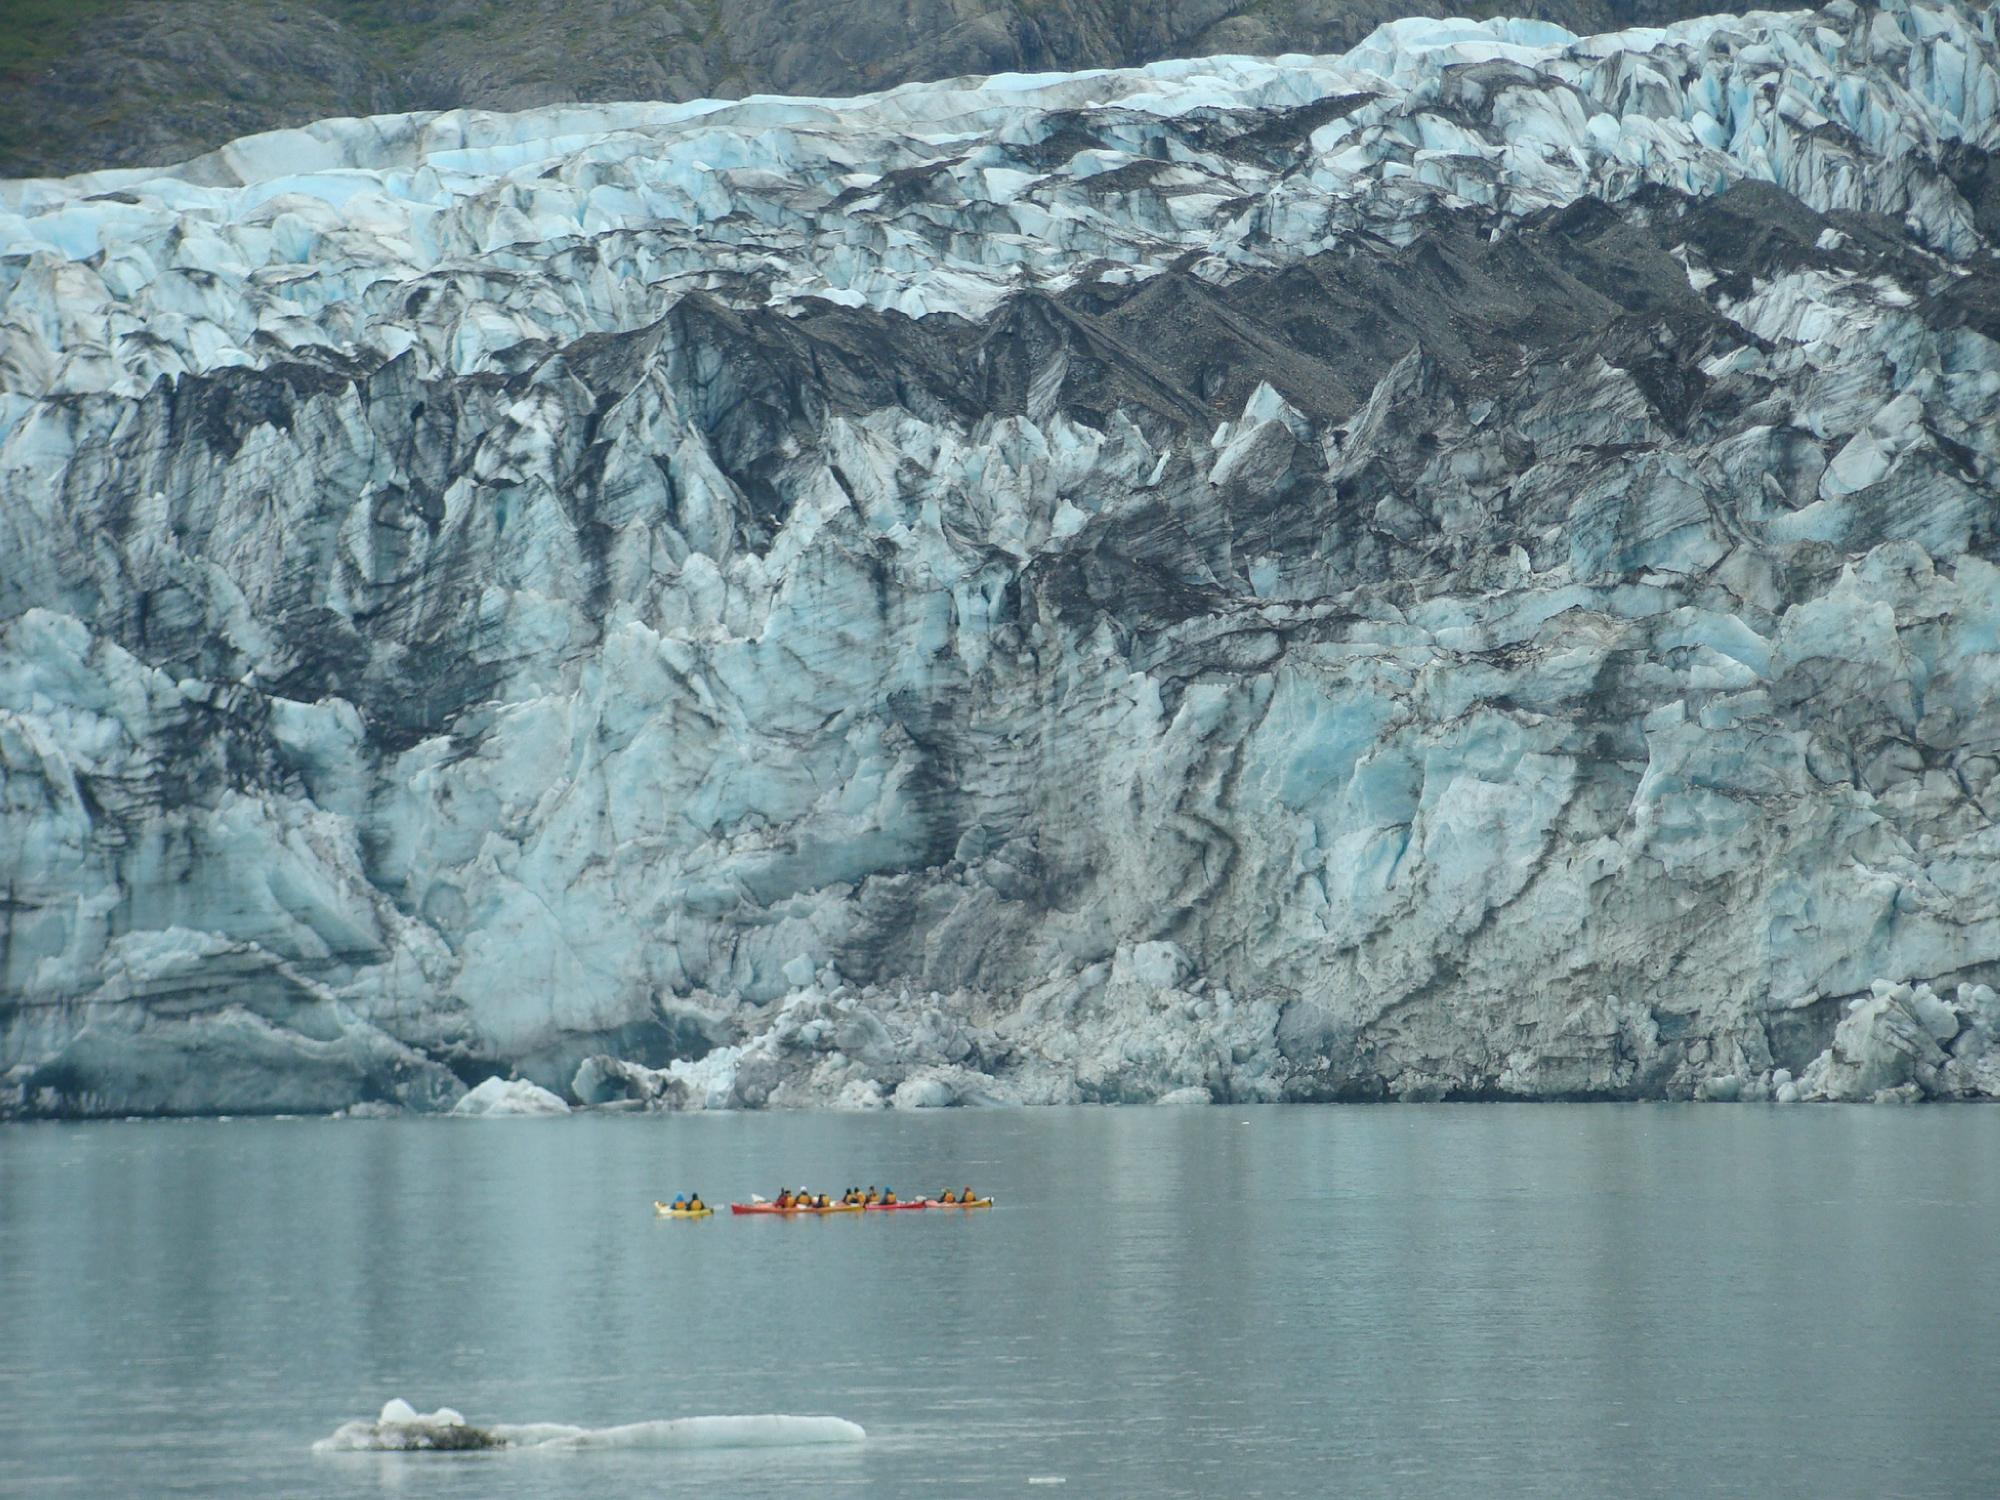 Glacier with kayaks in front (tiny!)